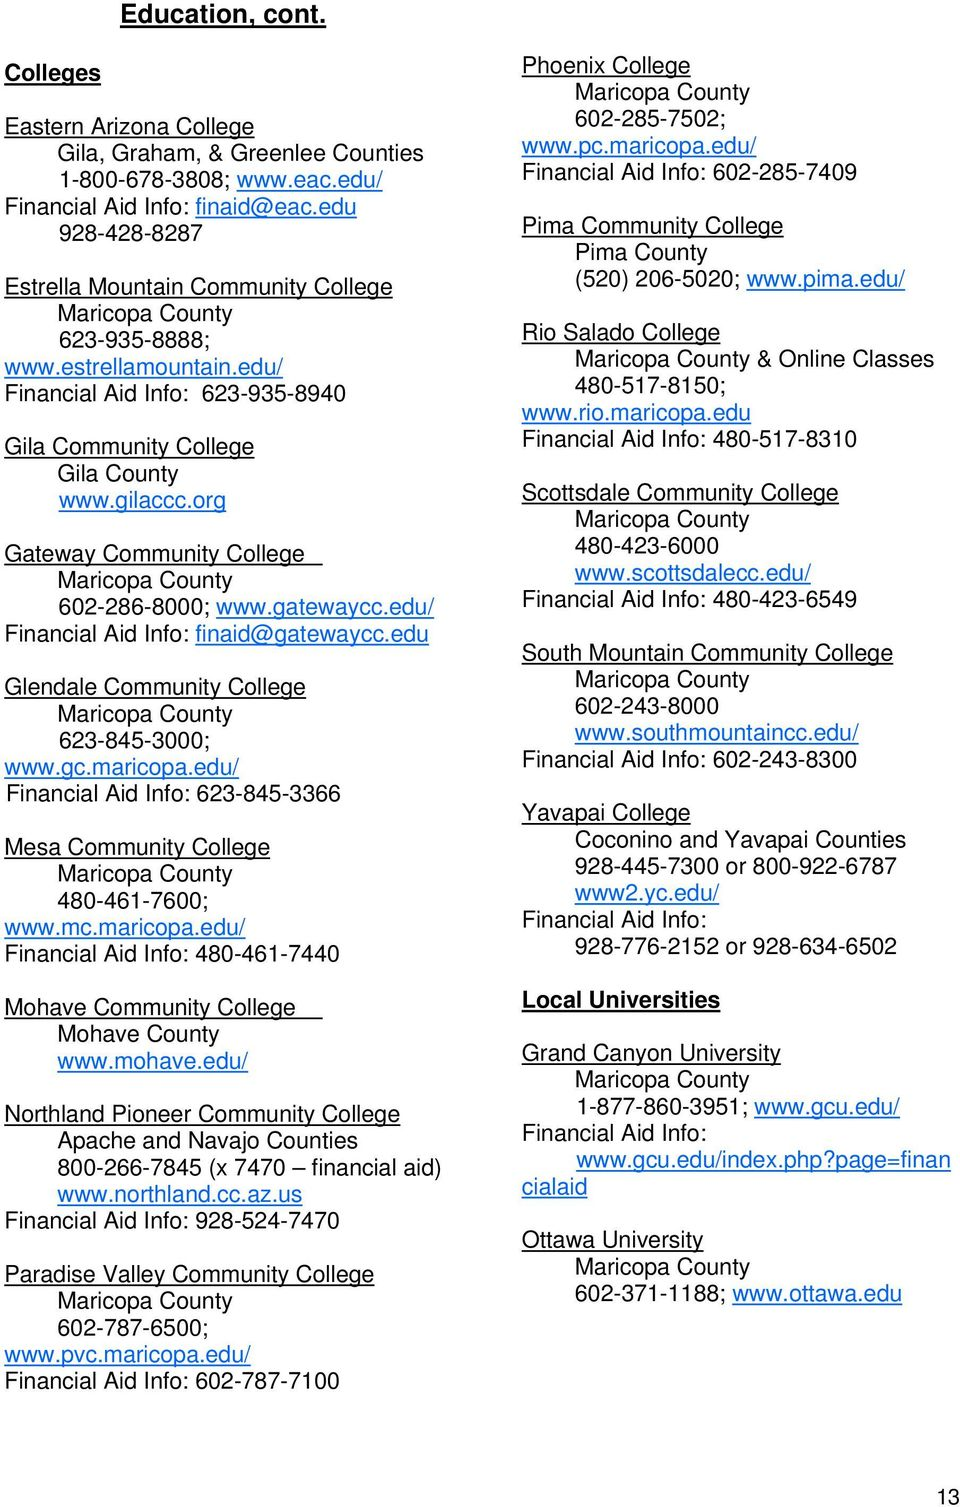 org Gateway Community College Maricopa County 602-286-8000; www.gatewaycc.edu/ Financial Aid Info: finaid@gatewaycc.edu Glendale Community College Maricopa County 623-845-3000; www.gc.maricopa.